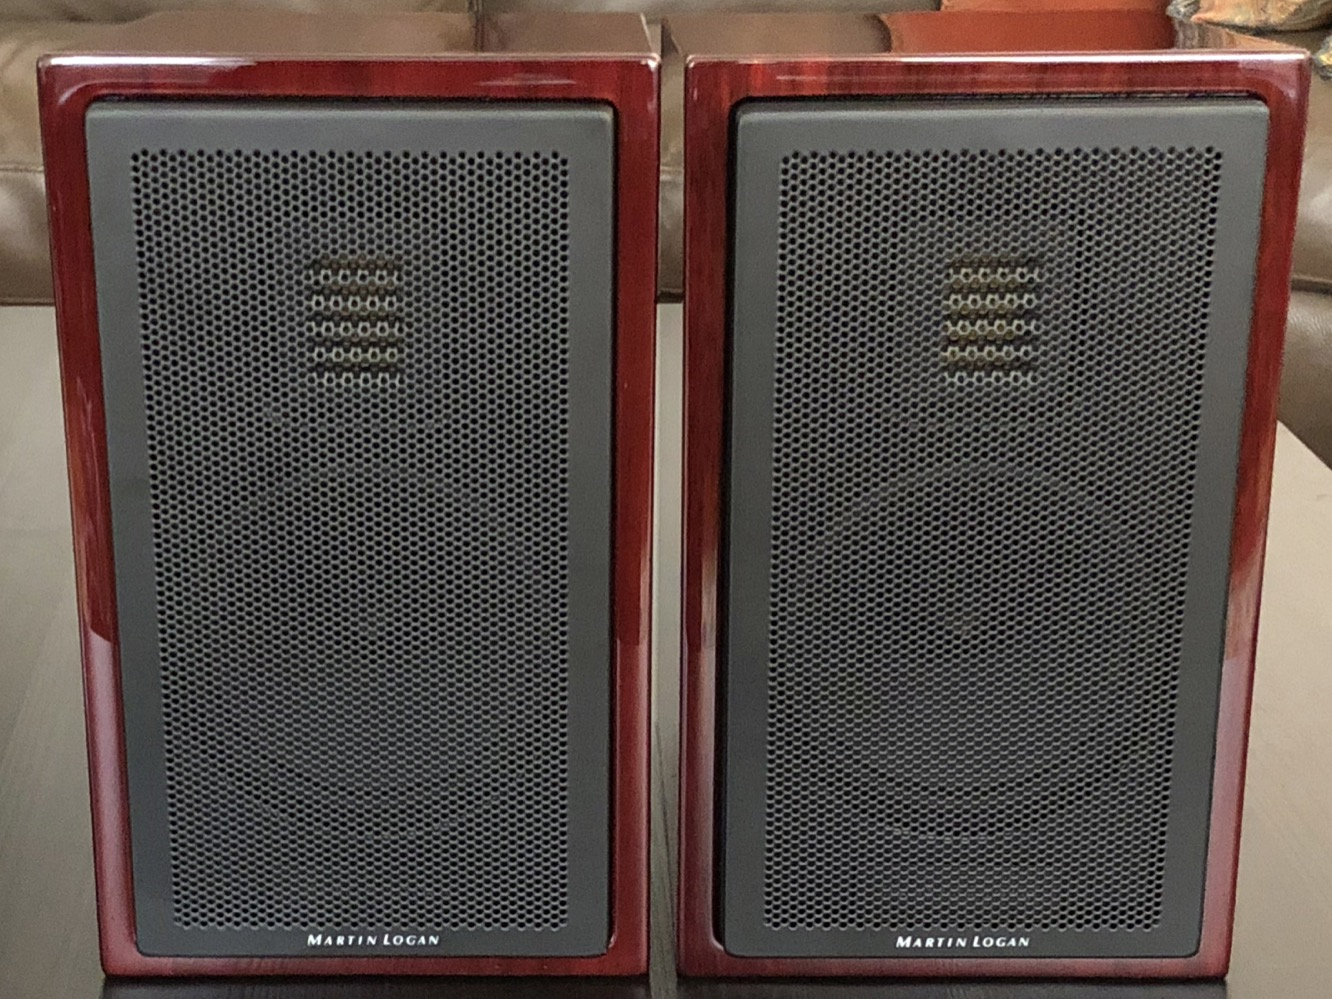 Review: MartinLogan Motion 15 Bookshelf Speakers 4